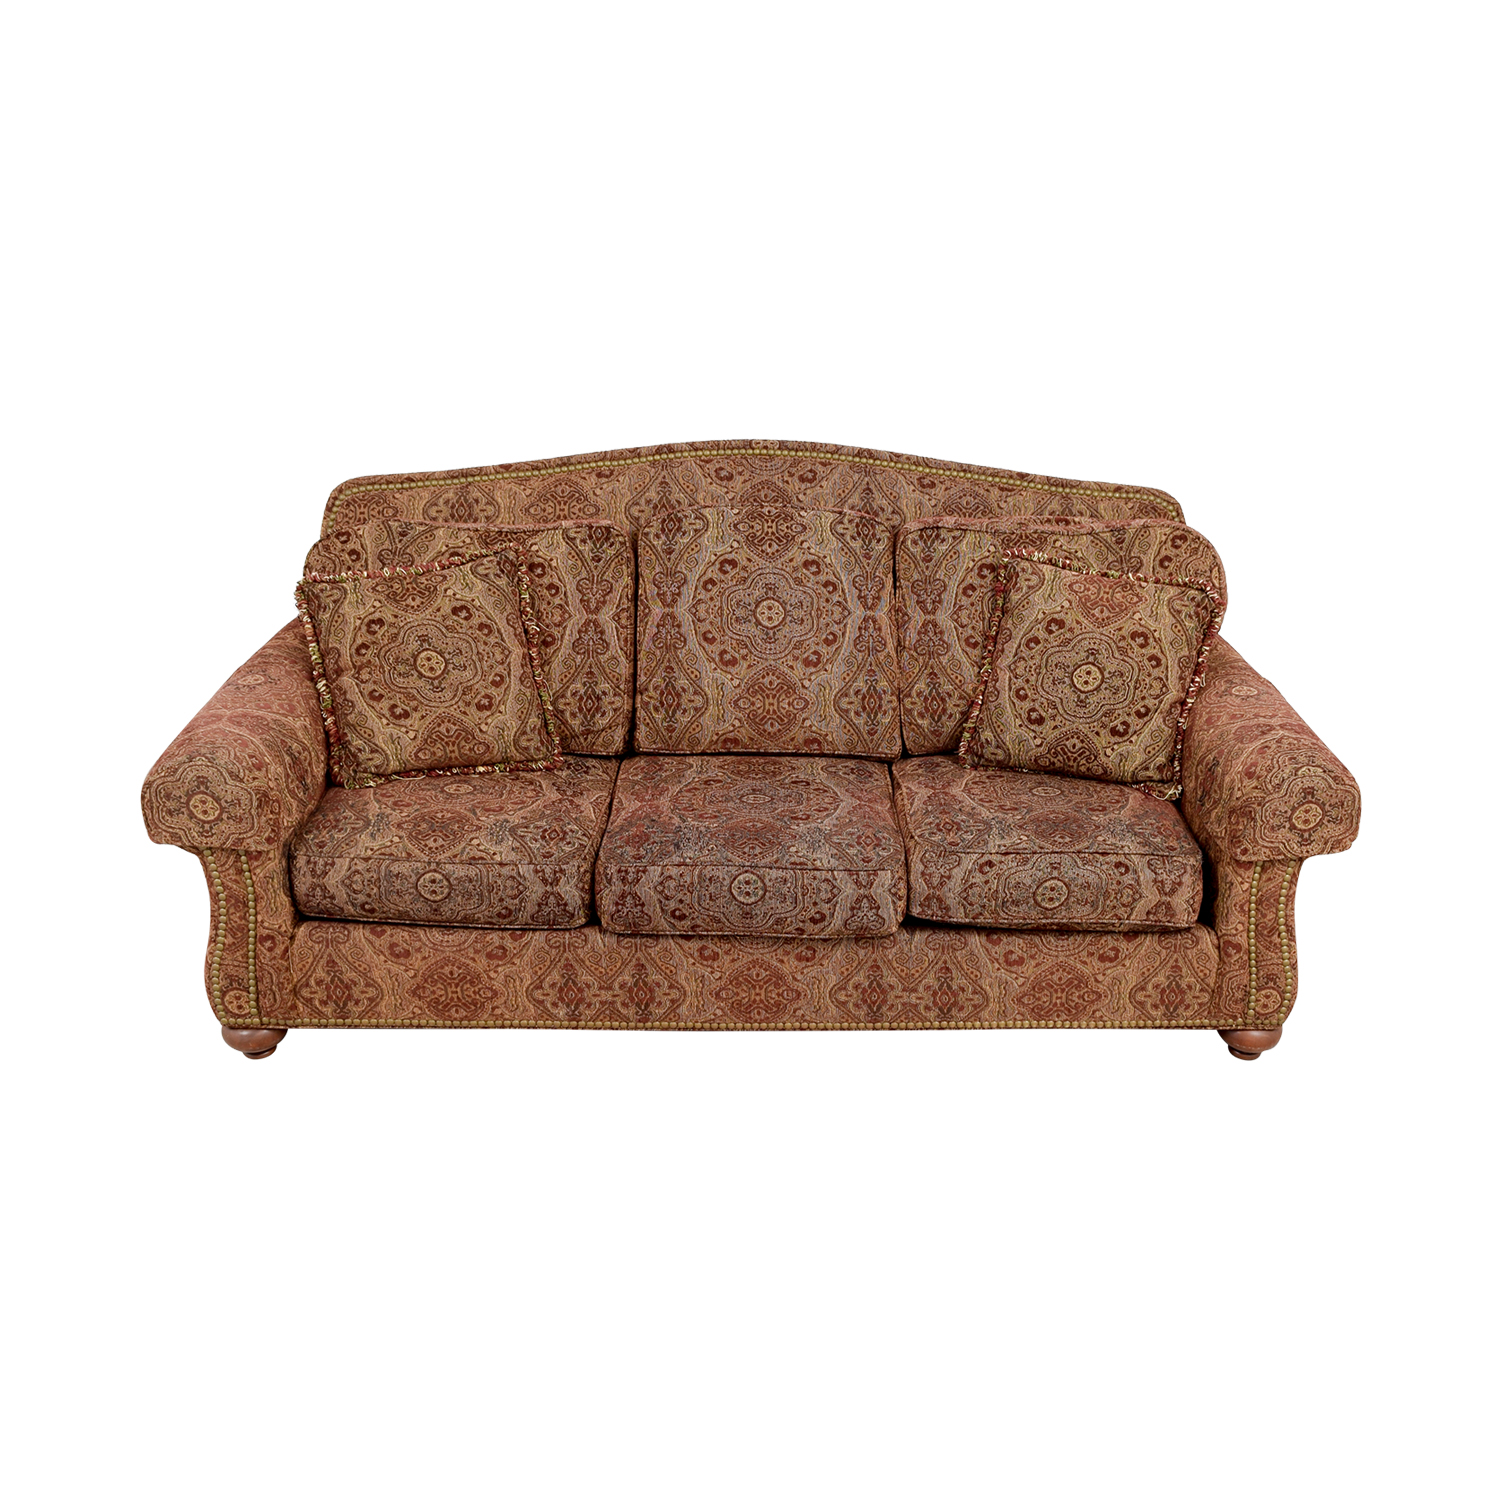 Ethan Allen Whitney Paisley Nailhead Couch sale